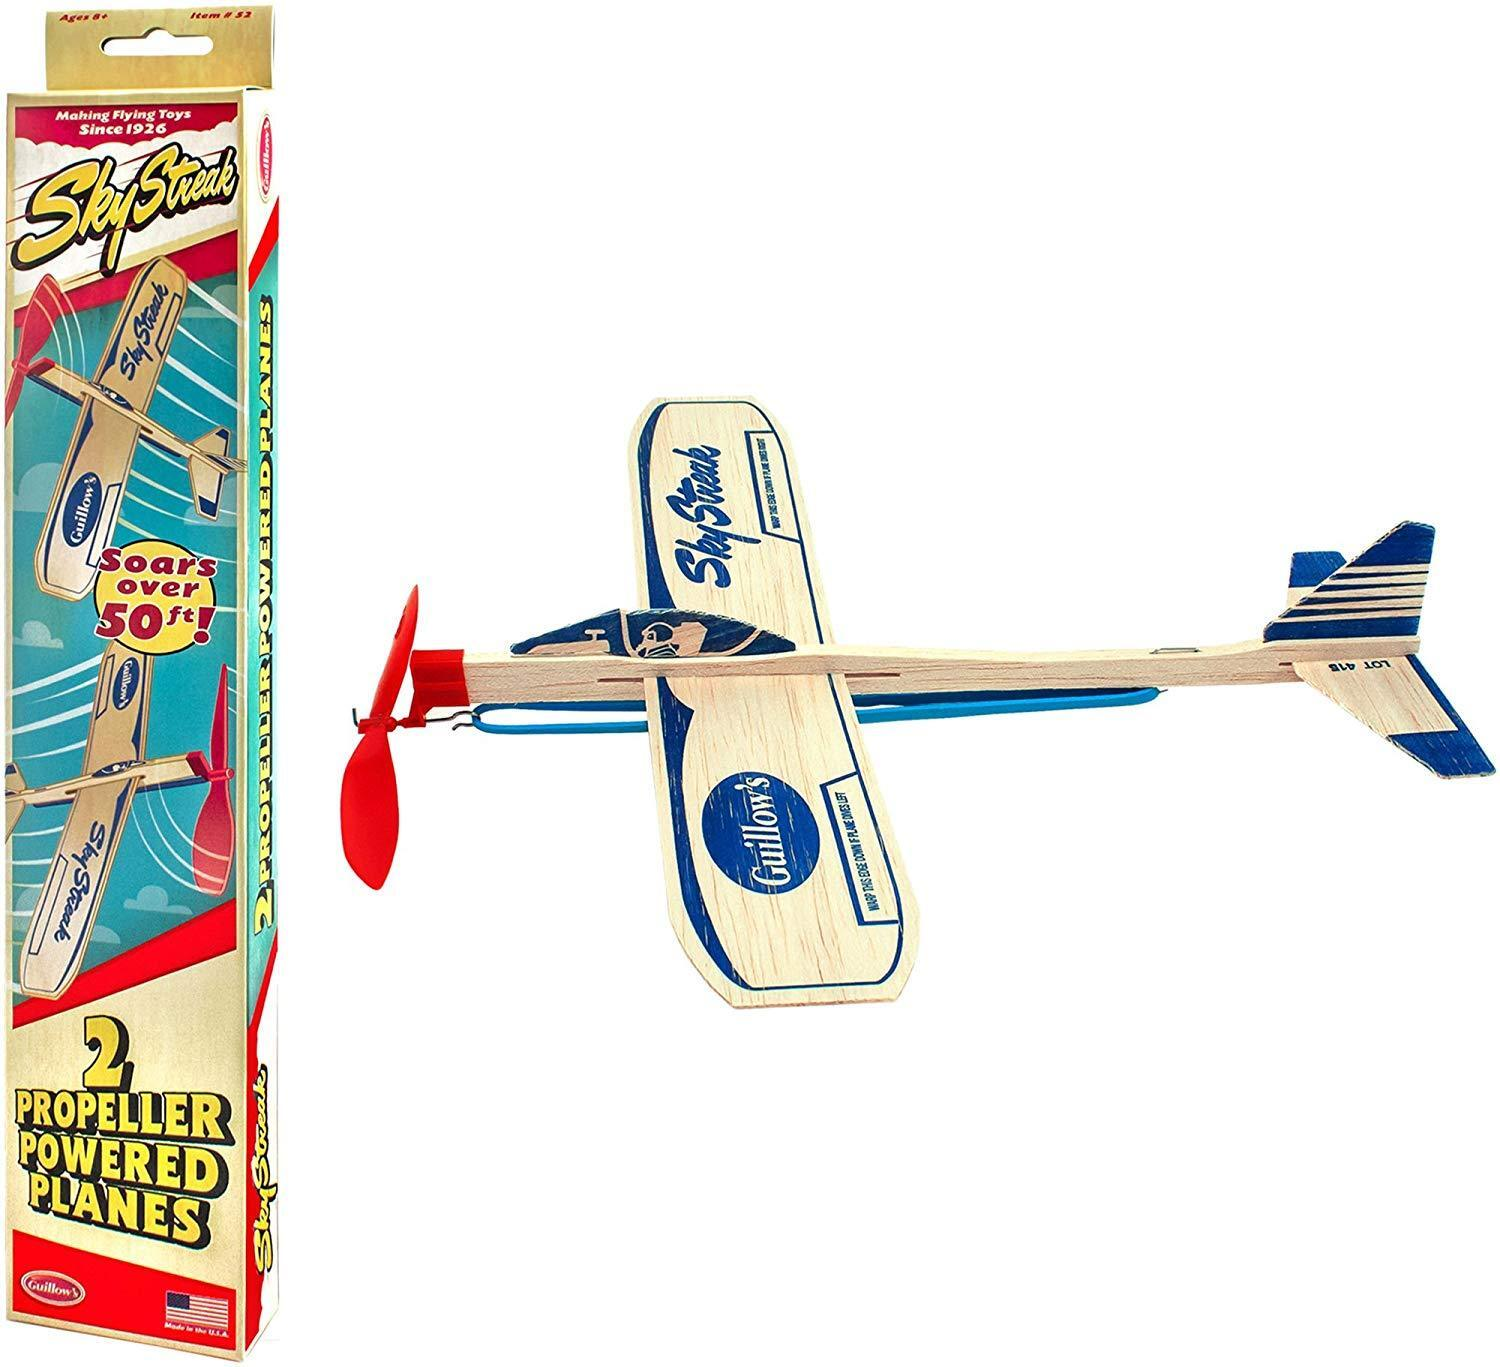 2 New Paul Guillow Wooden Balsa Airplanes Rubber Band Model Toy Plane Airplane Classic Toys